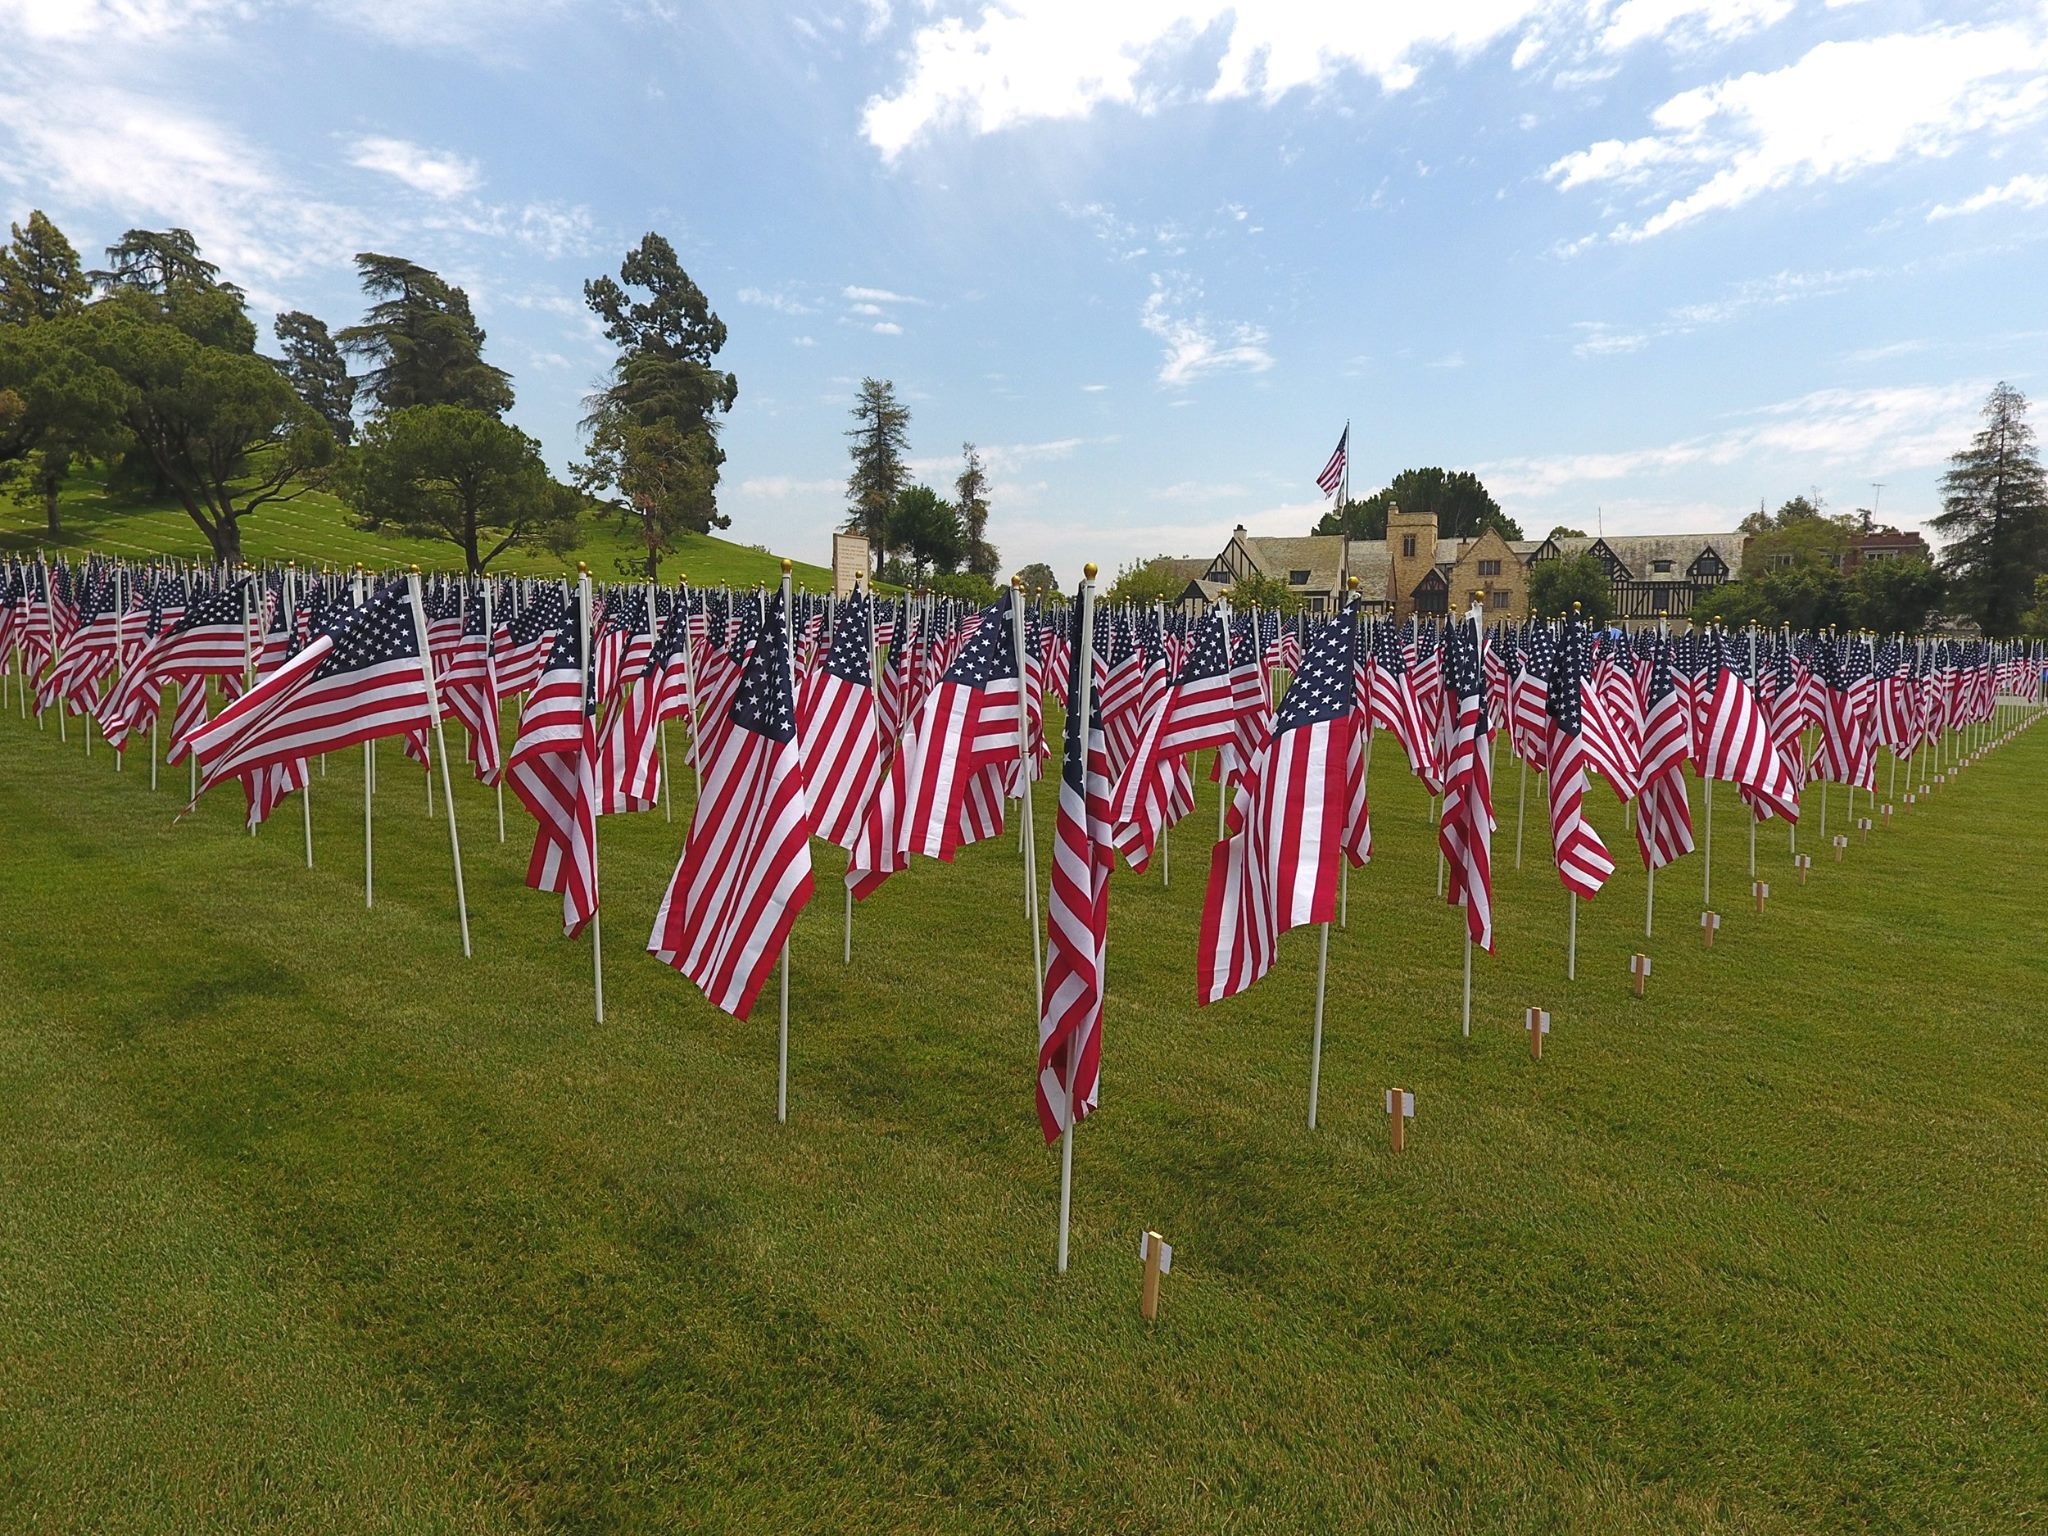 Forest Lawn Glendale's Memorial Day commemoration